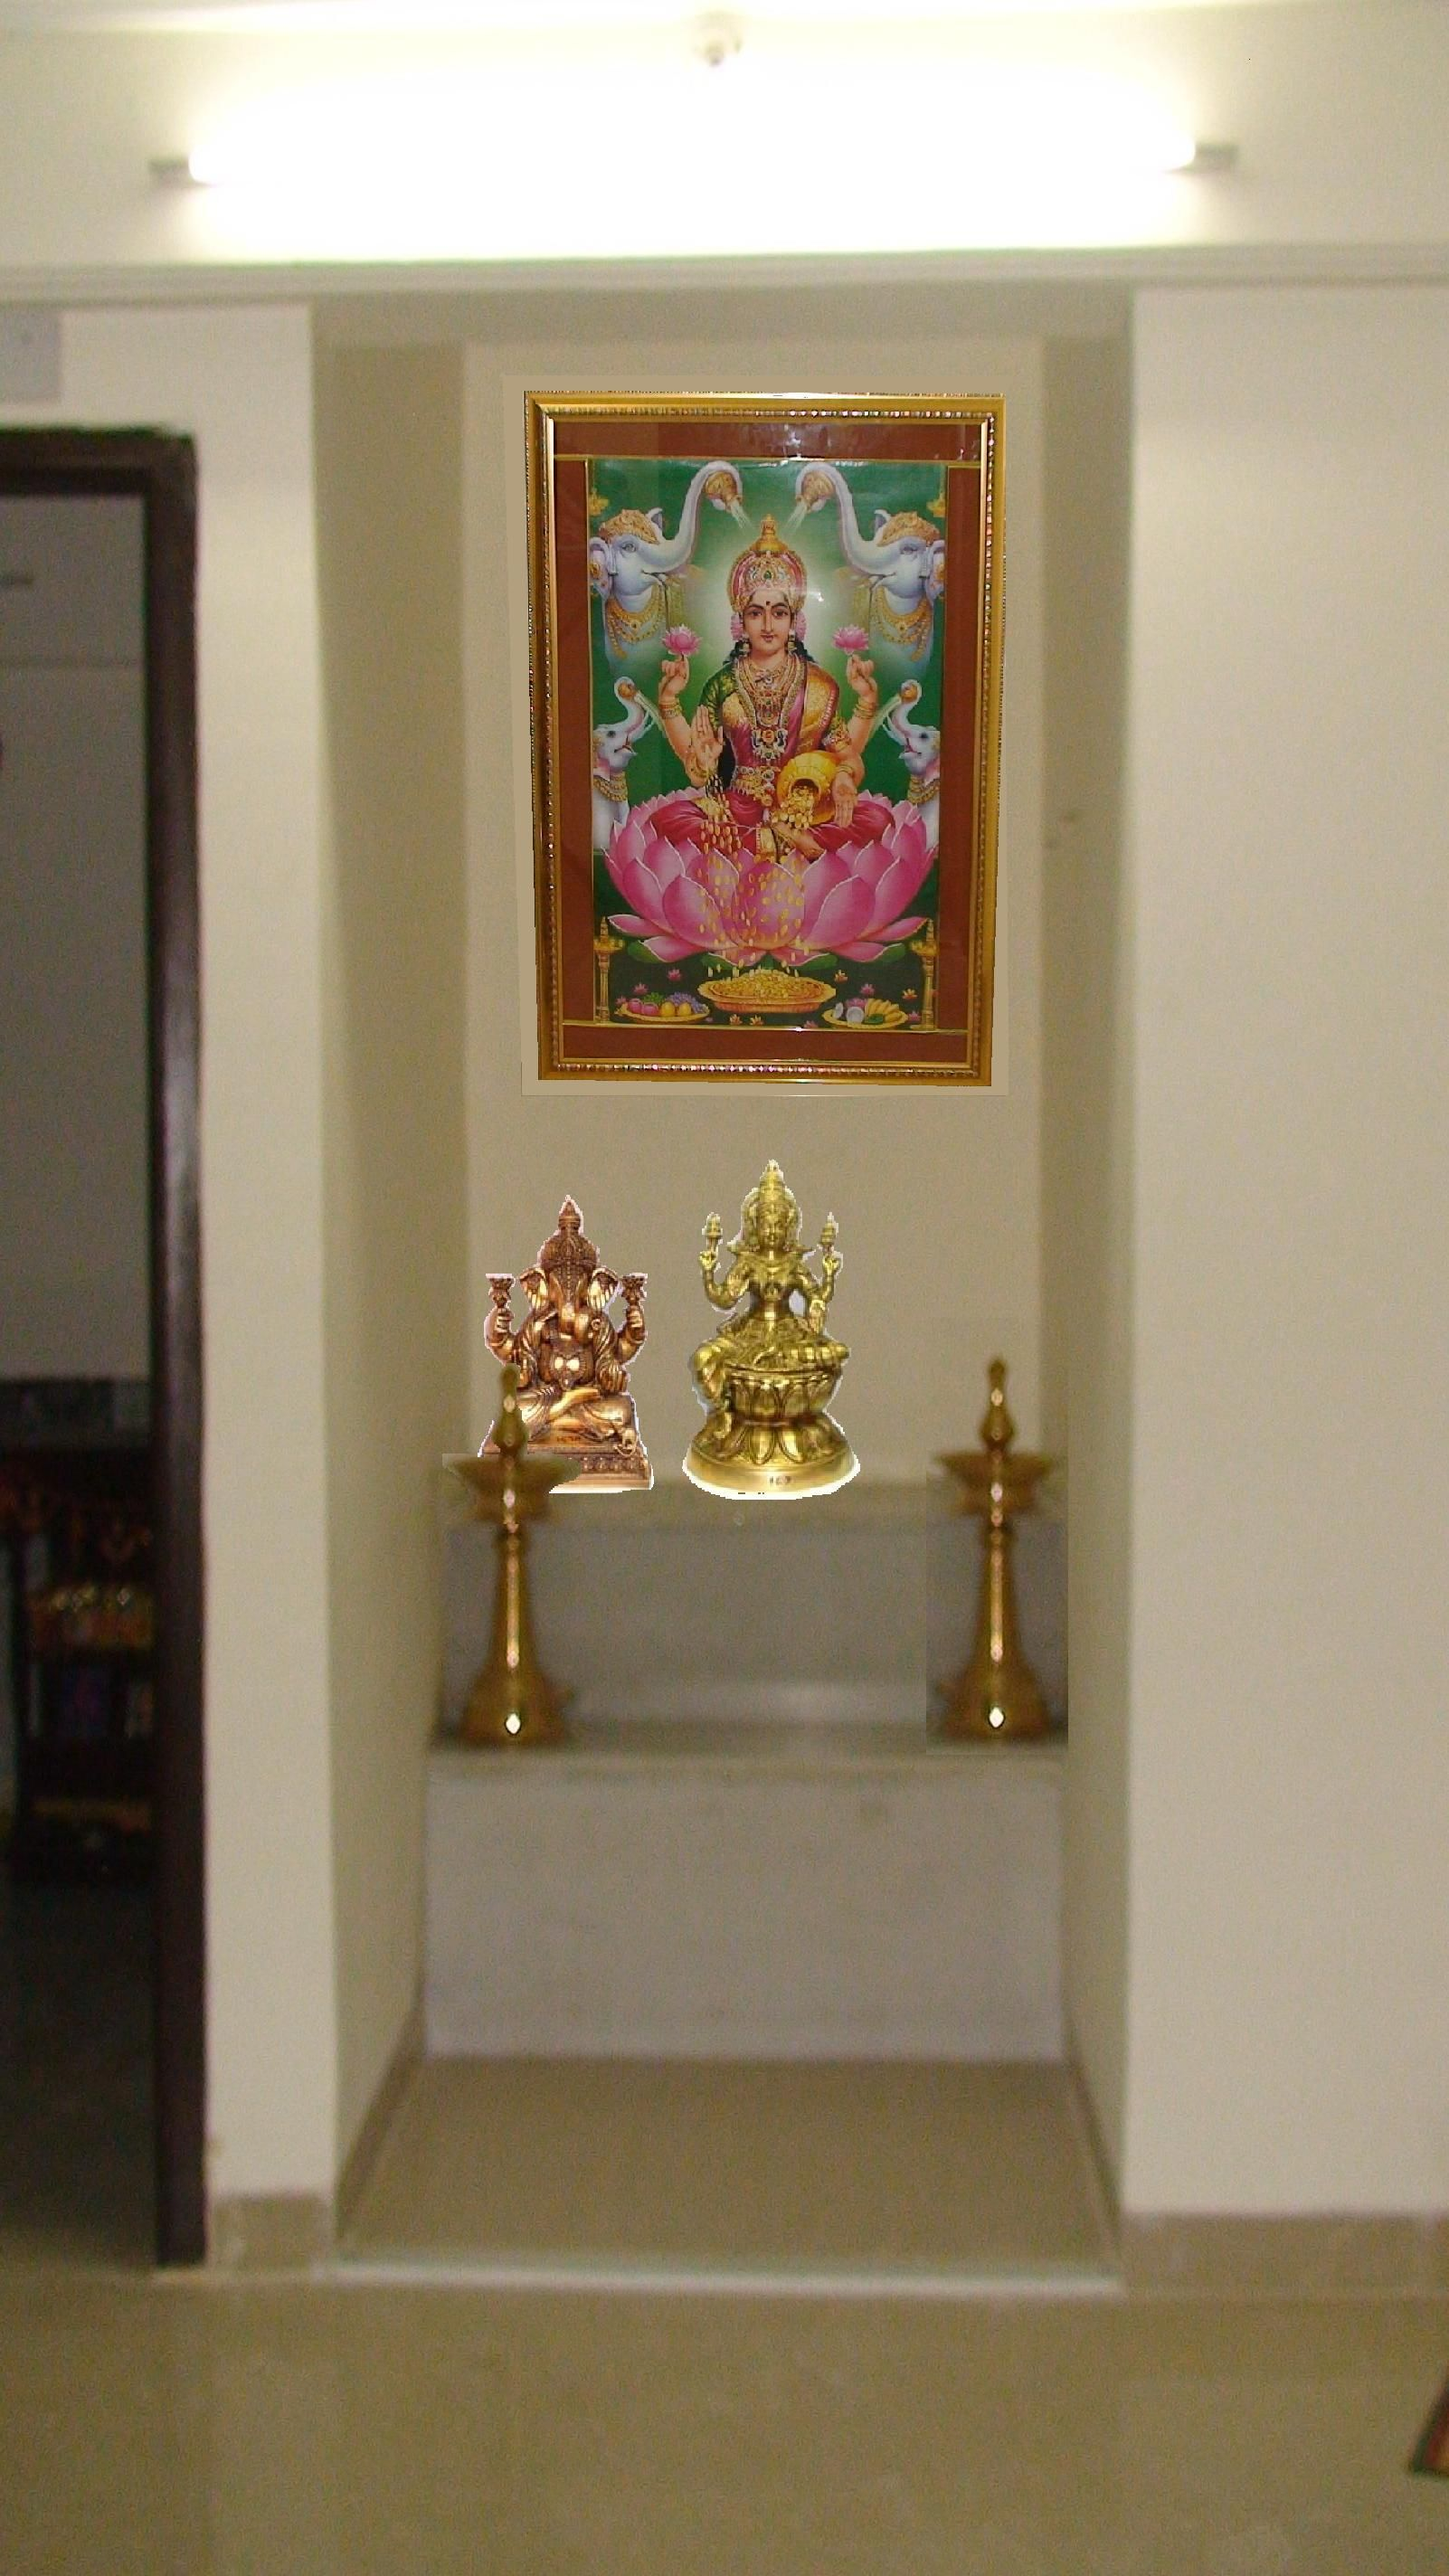 9 Traditional Pooja Room Door Designs In 2020: Pooja Room Design, Pooja Rooms